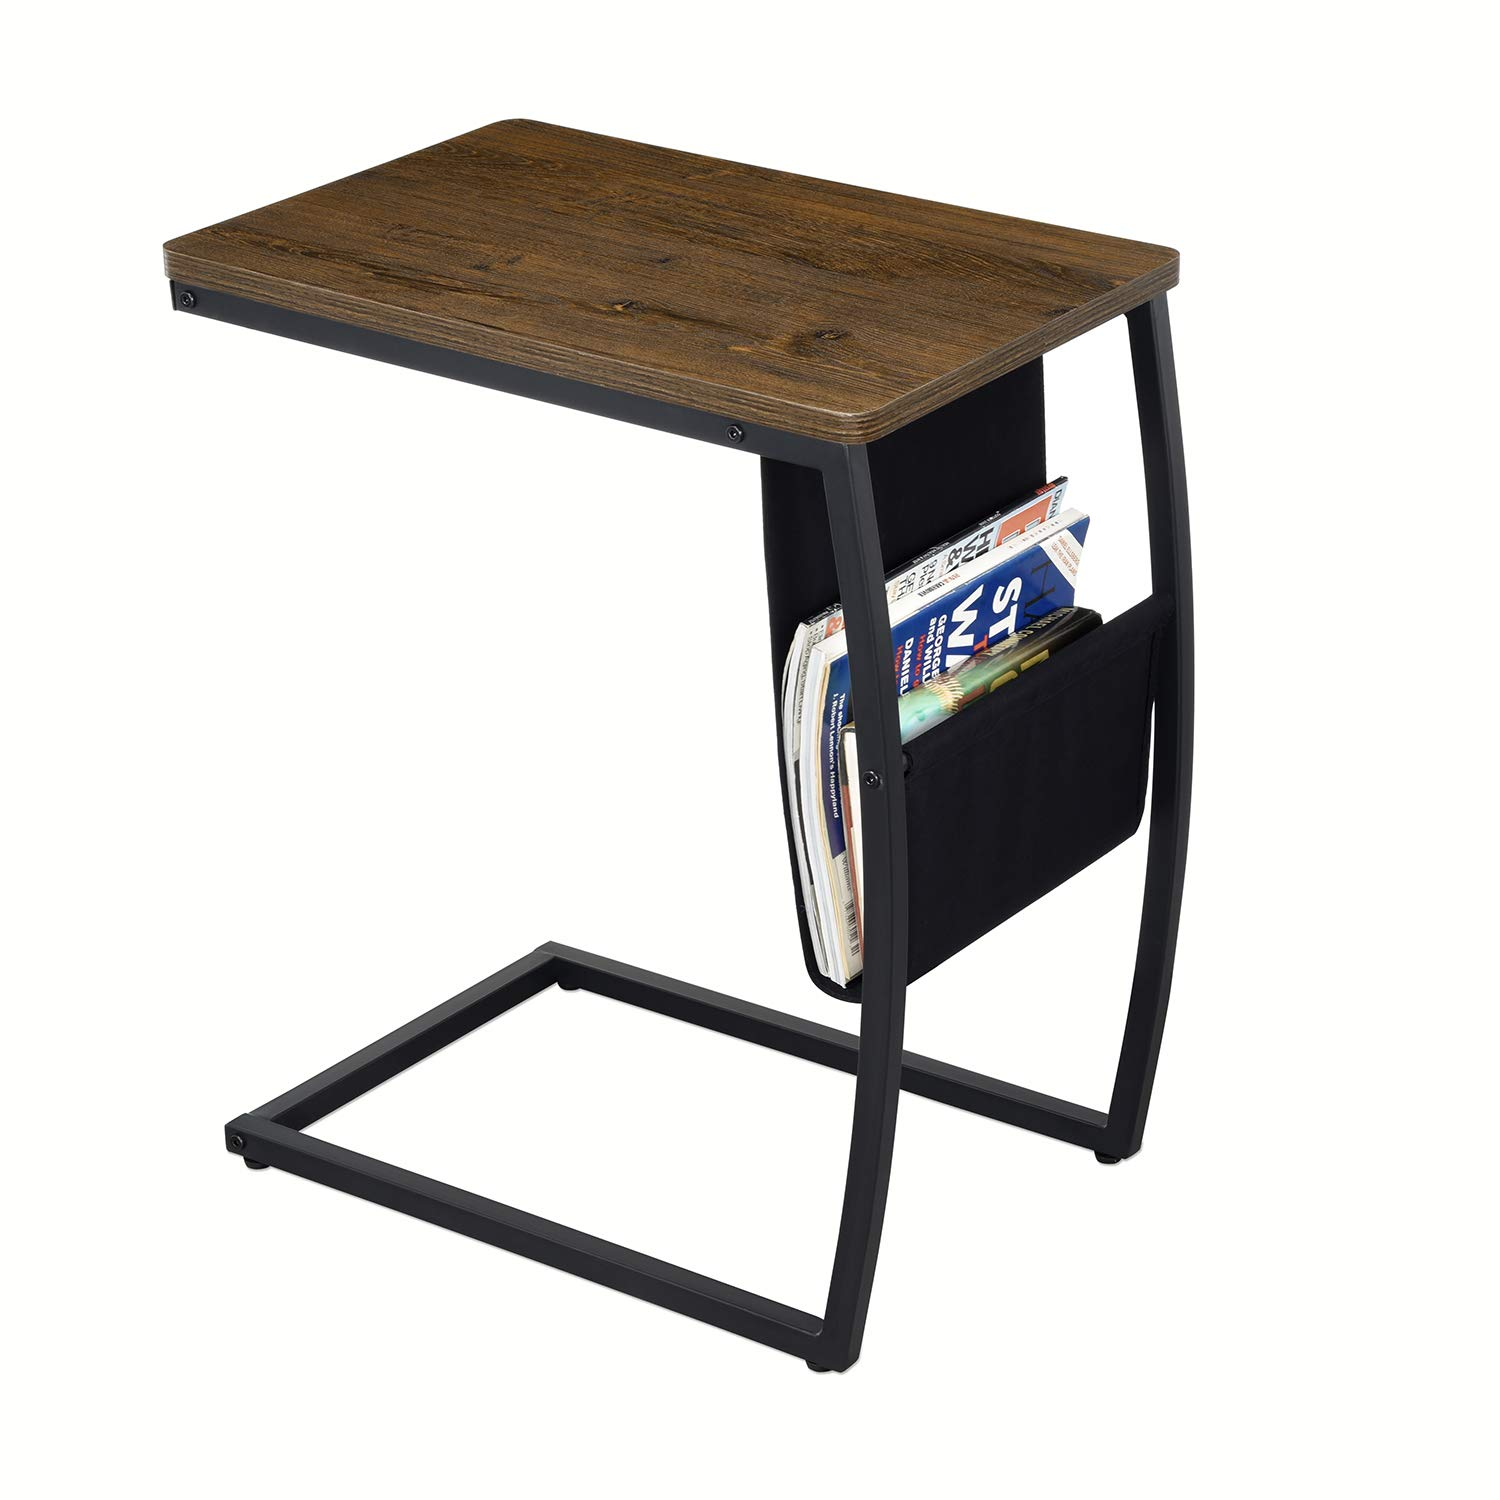 RooLee Sofa Side End Table, Vintage Couch Desk C Shaped Table with Storage Bag, Living Room Accent Tables for Coffee Snack Laptop